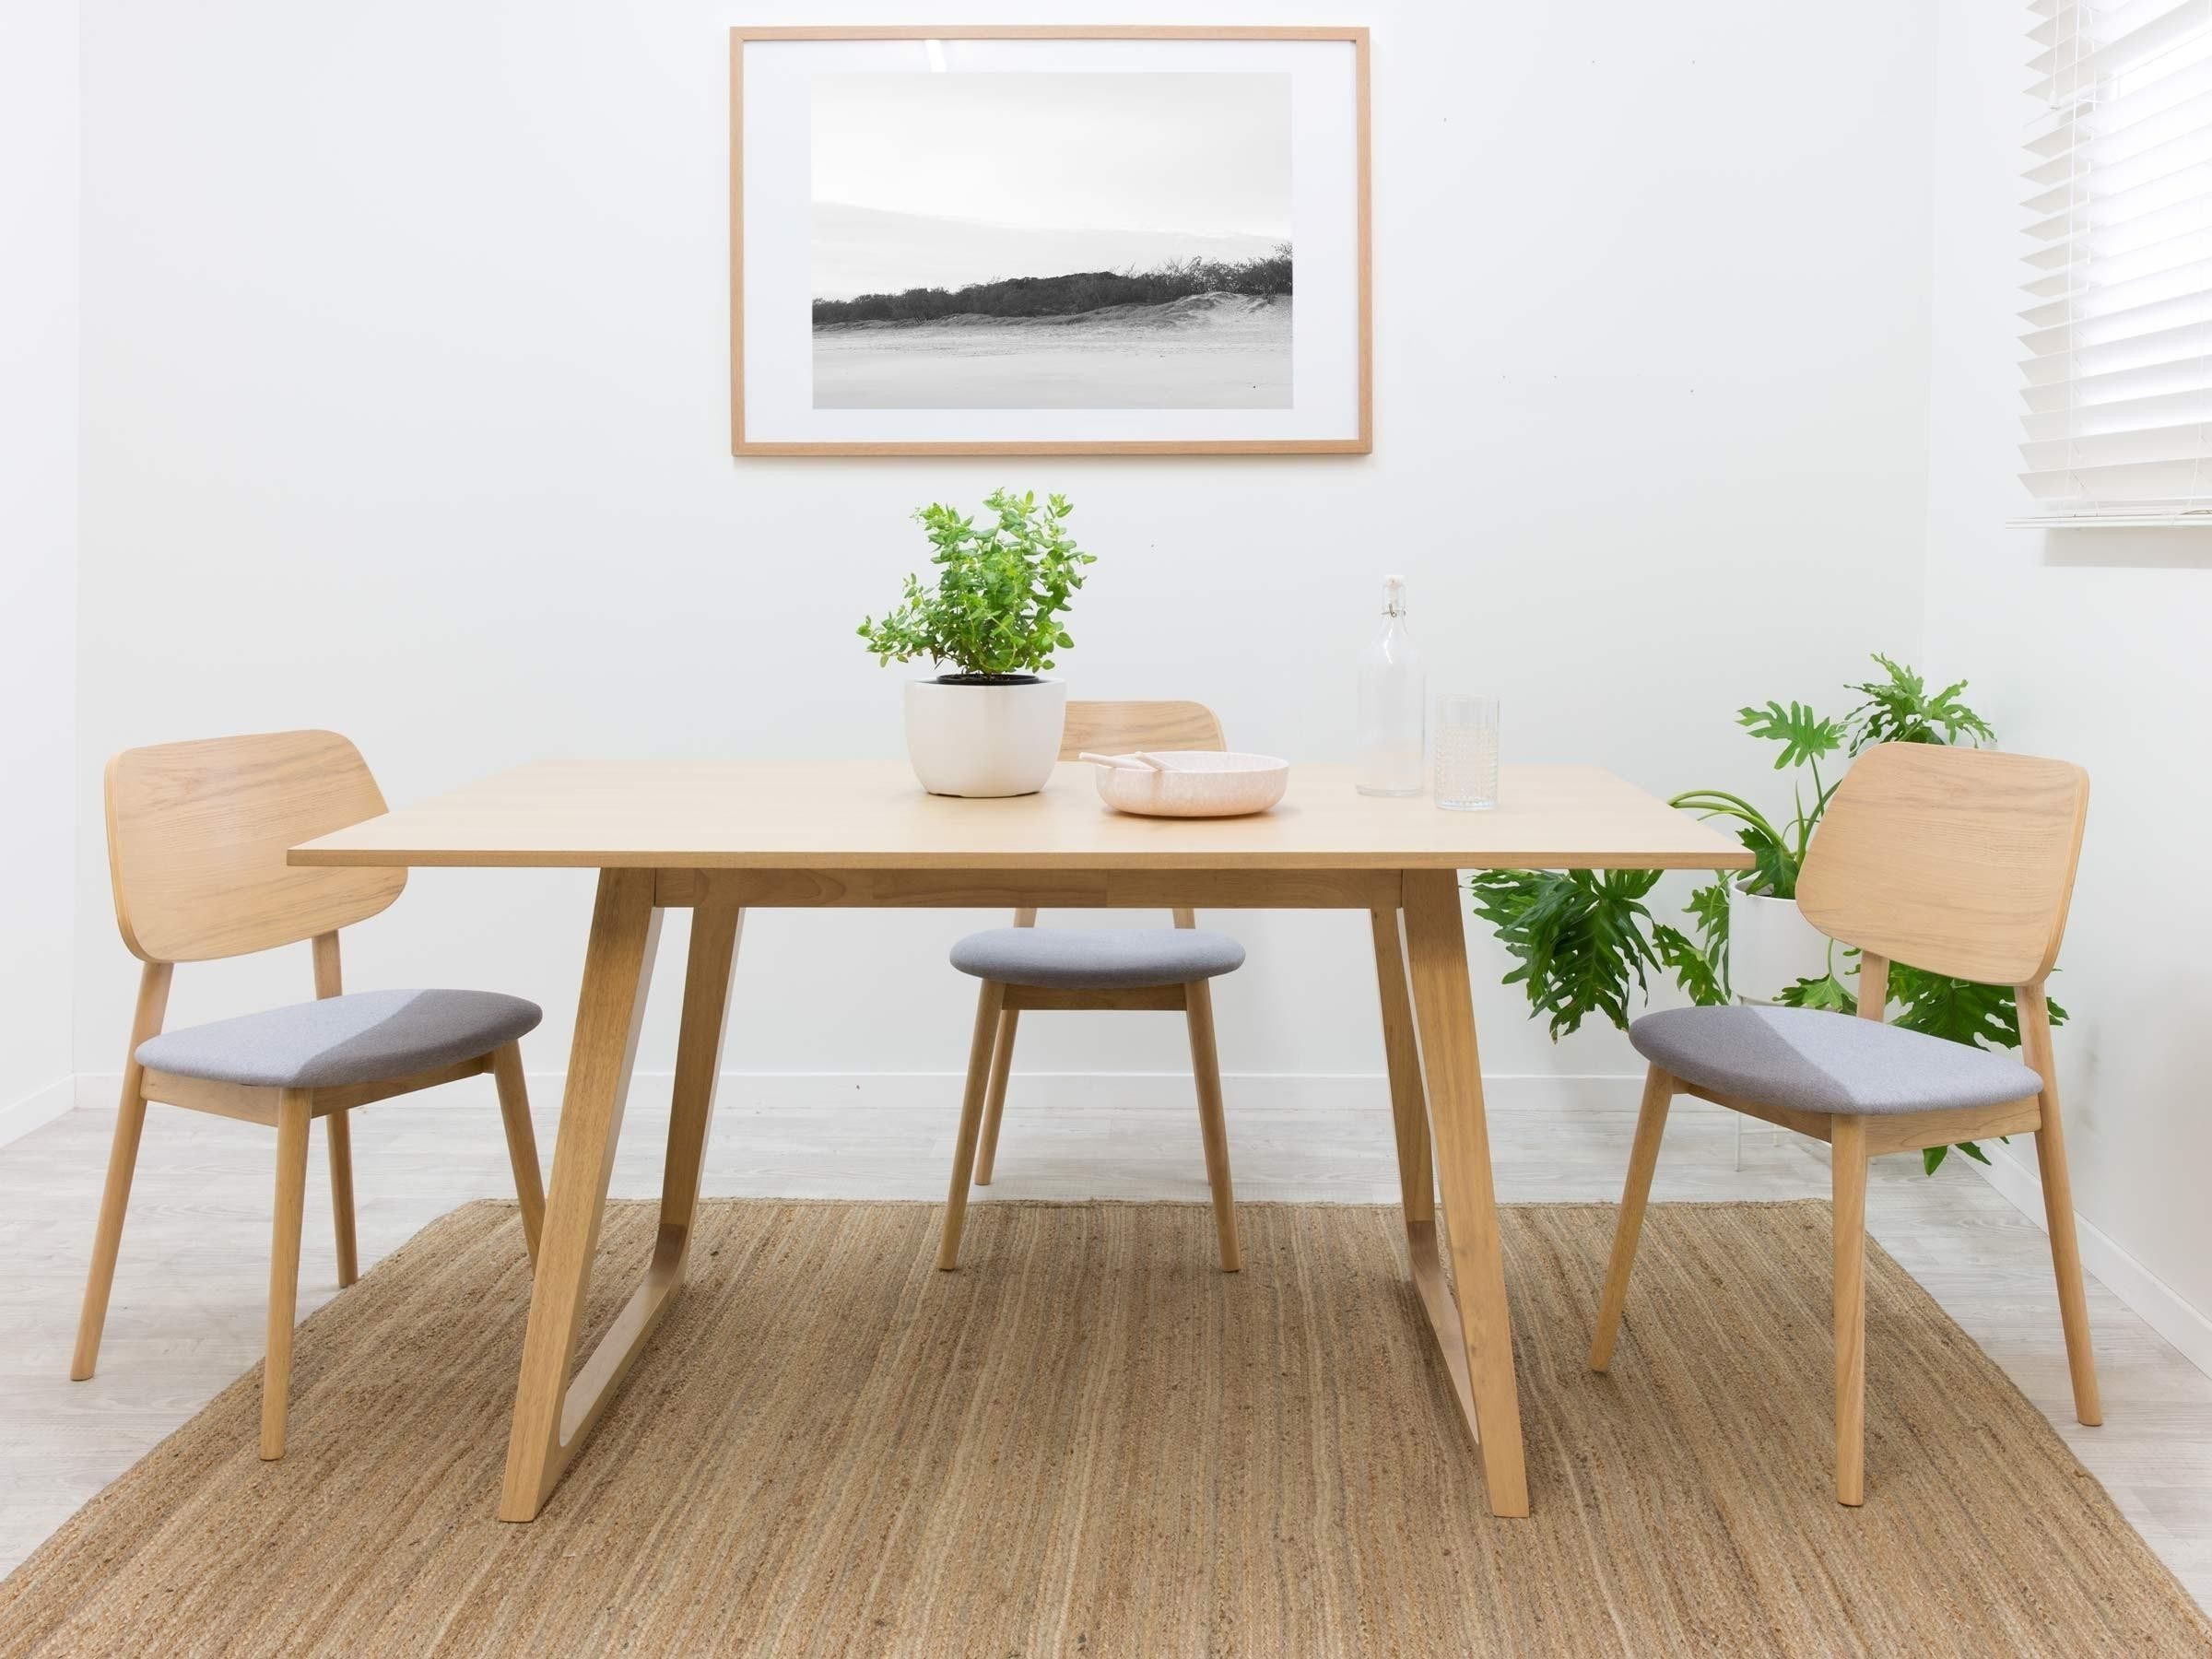 Preferred 6 Seater Round Dining Tables Throughout The 24 Elegant Solid Oak Round Dining Table 6 Chairs (View 20 of 25)